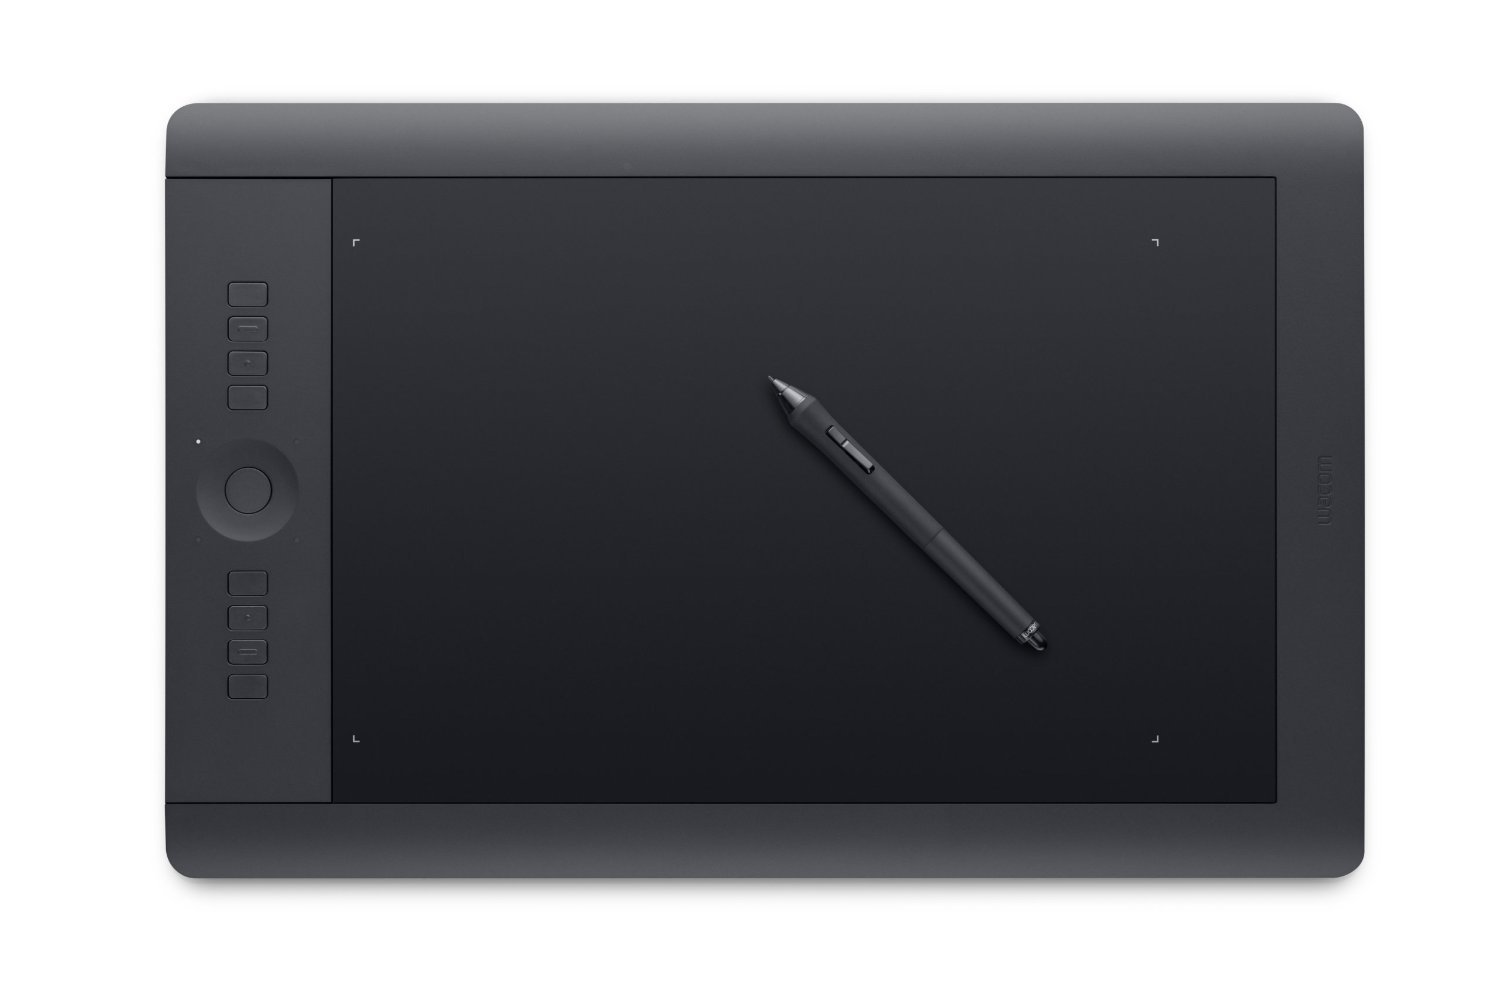 wacom-intuos-pro-pen-touch-large-tablet-pth851-certified-refurbished